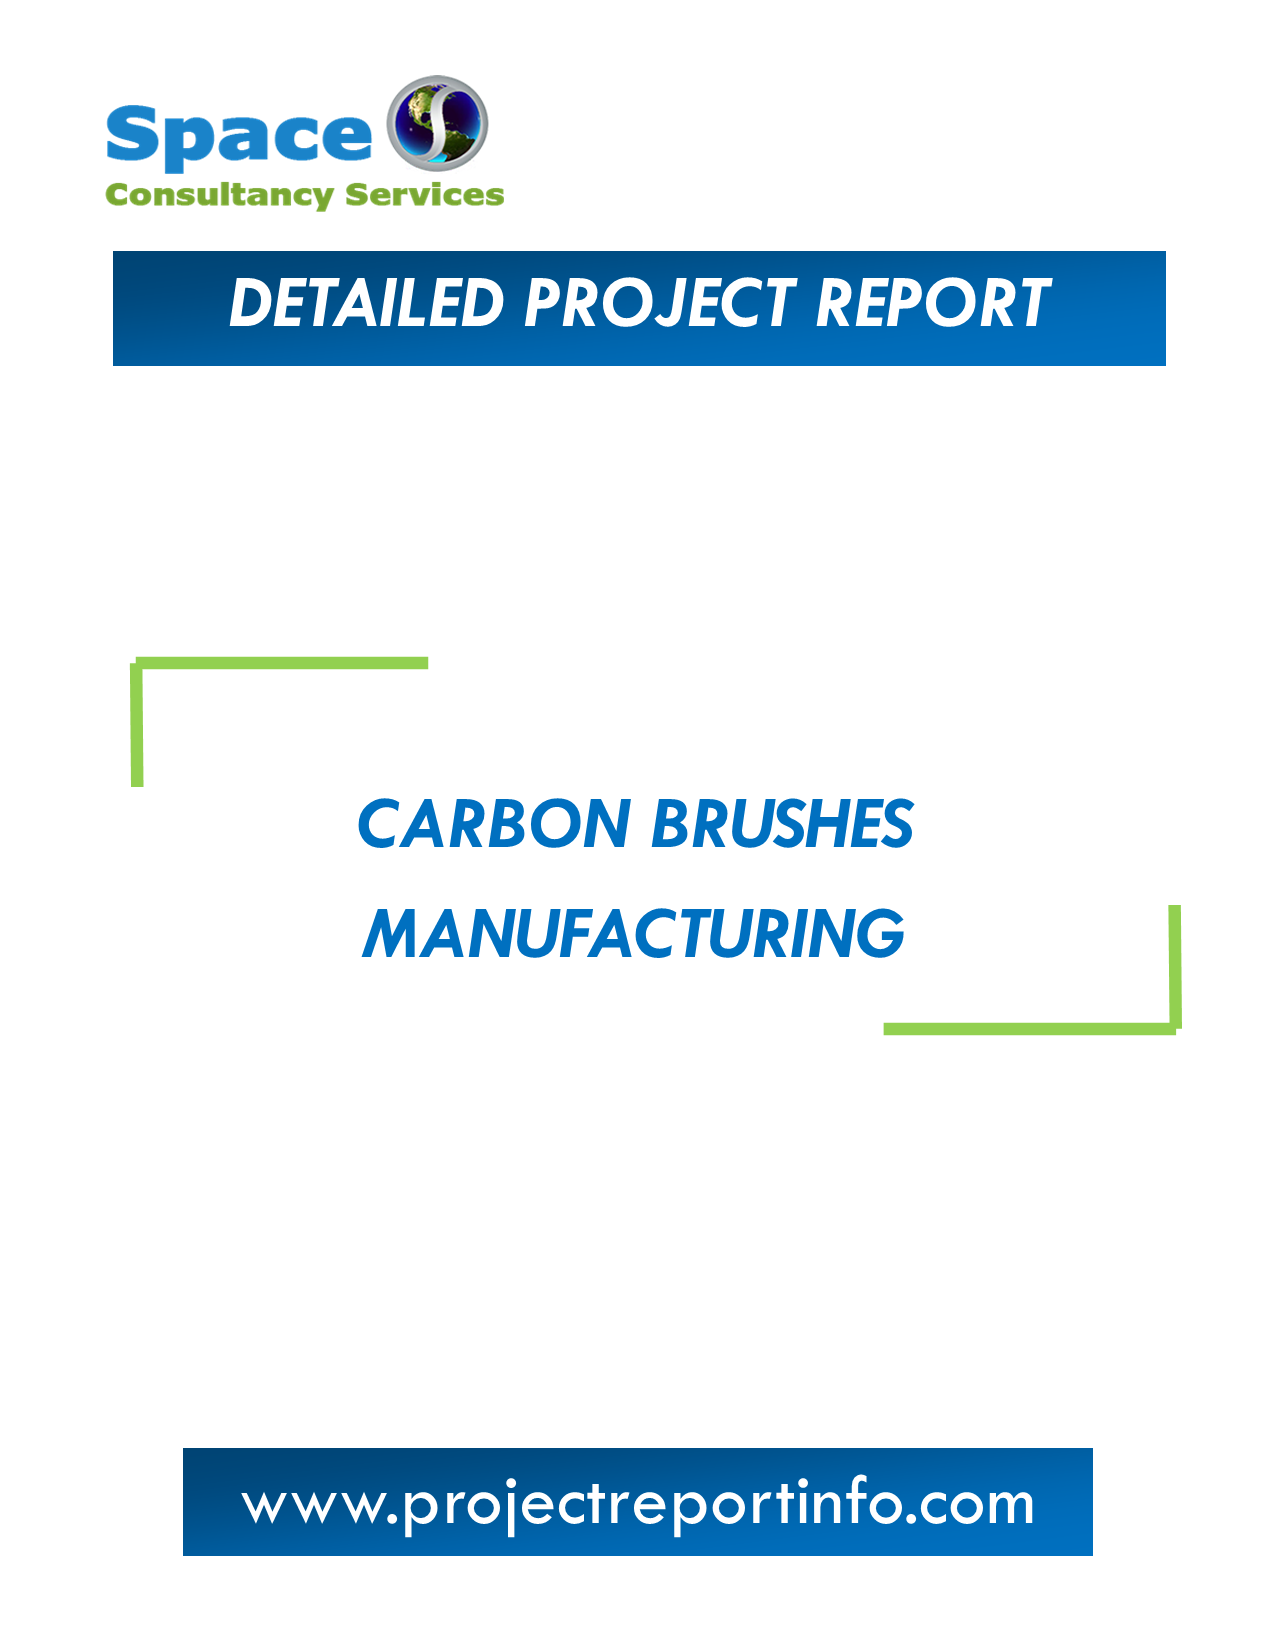 Carbon Brushes Project Report